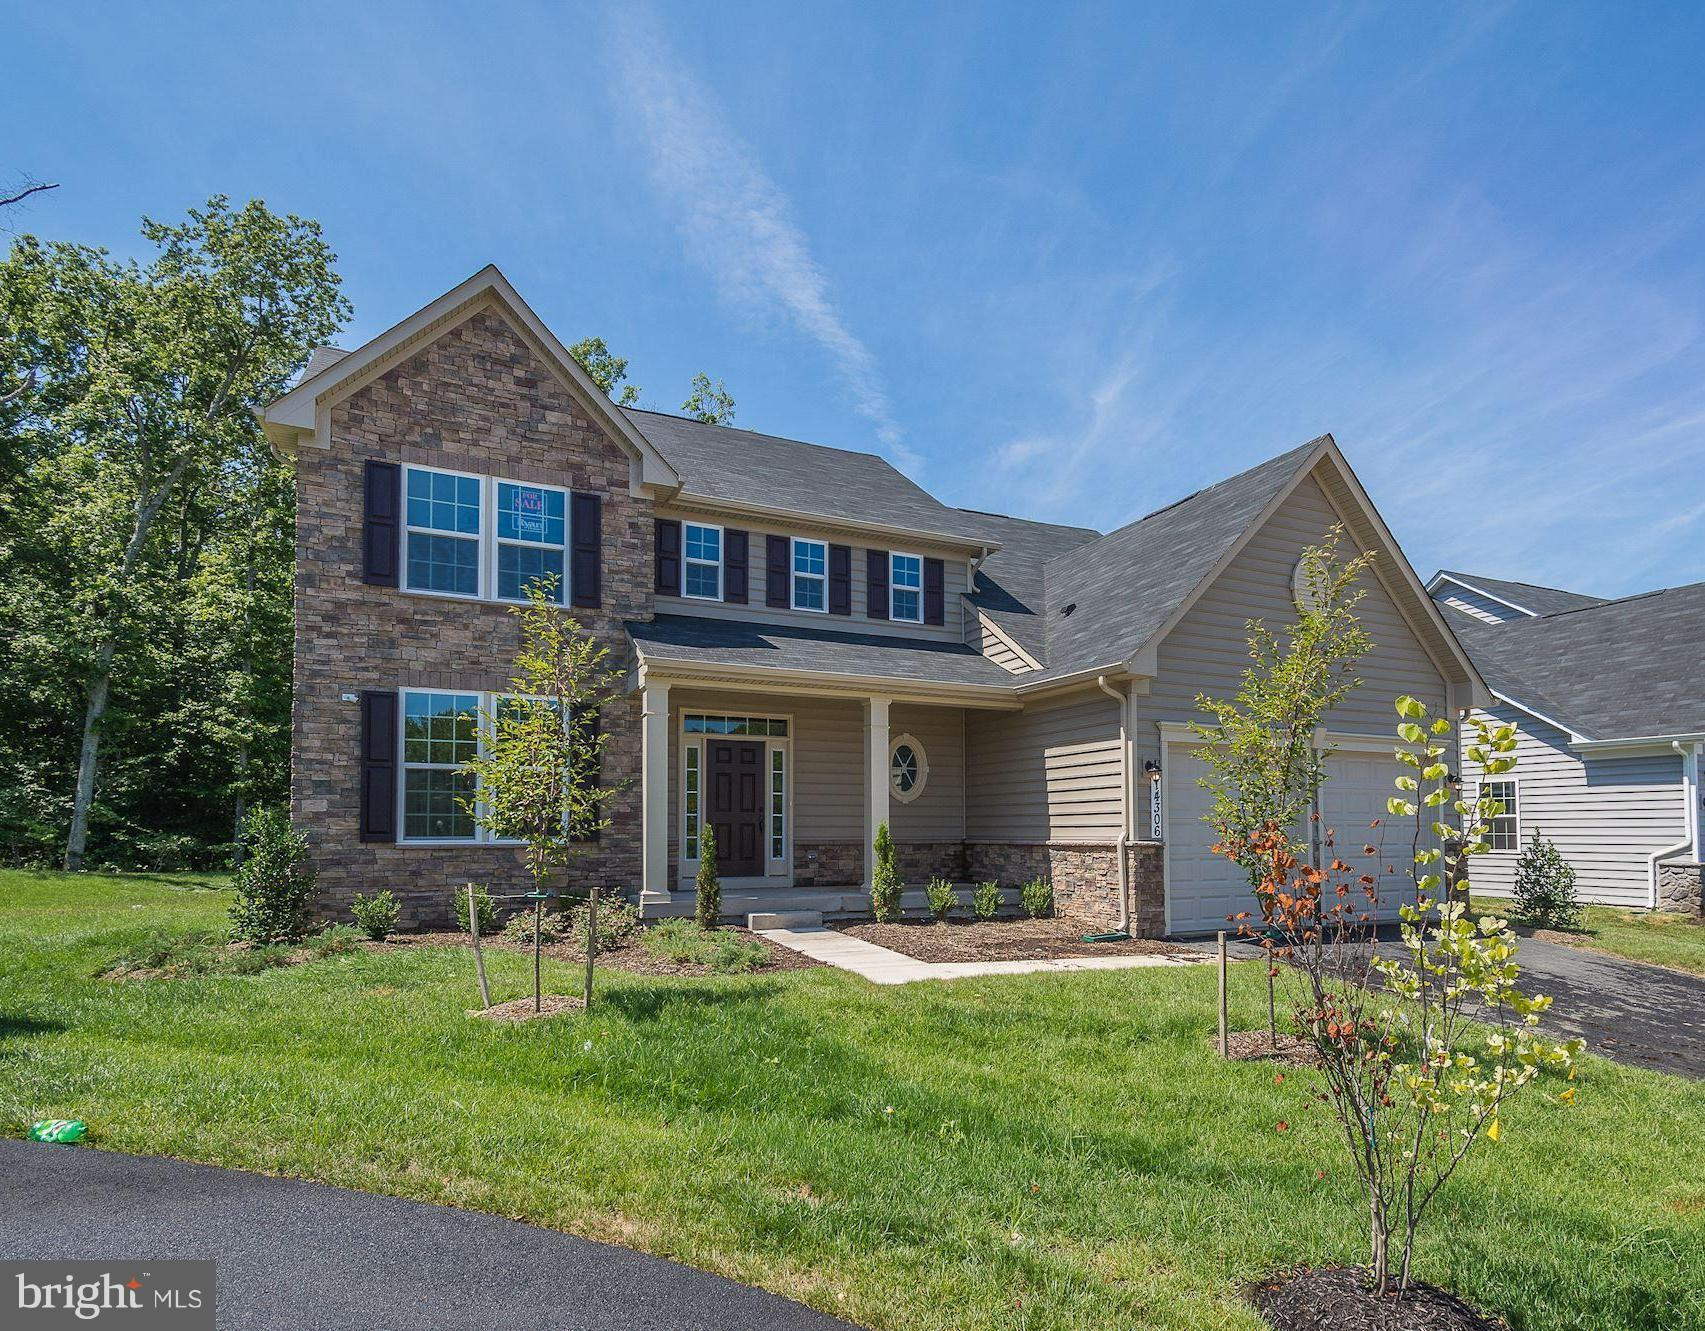 14306 HIDDEN FOREST DRIVE, ACCOKEEK, MD 20607